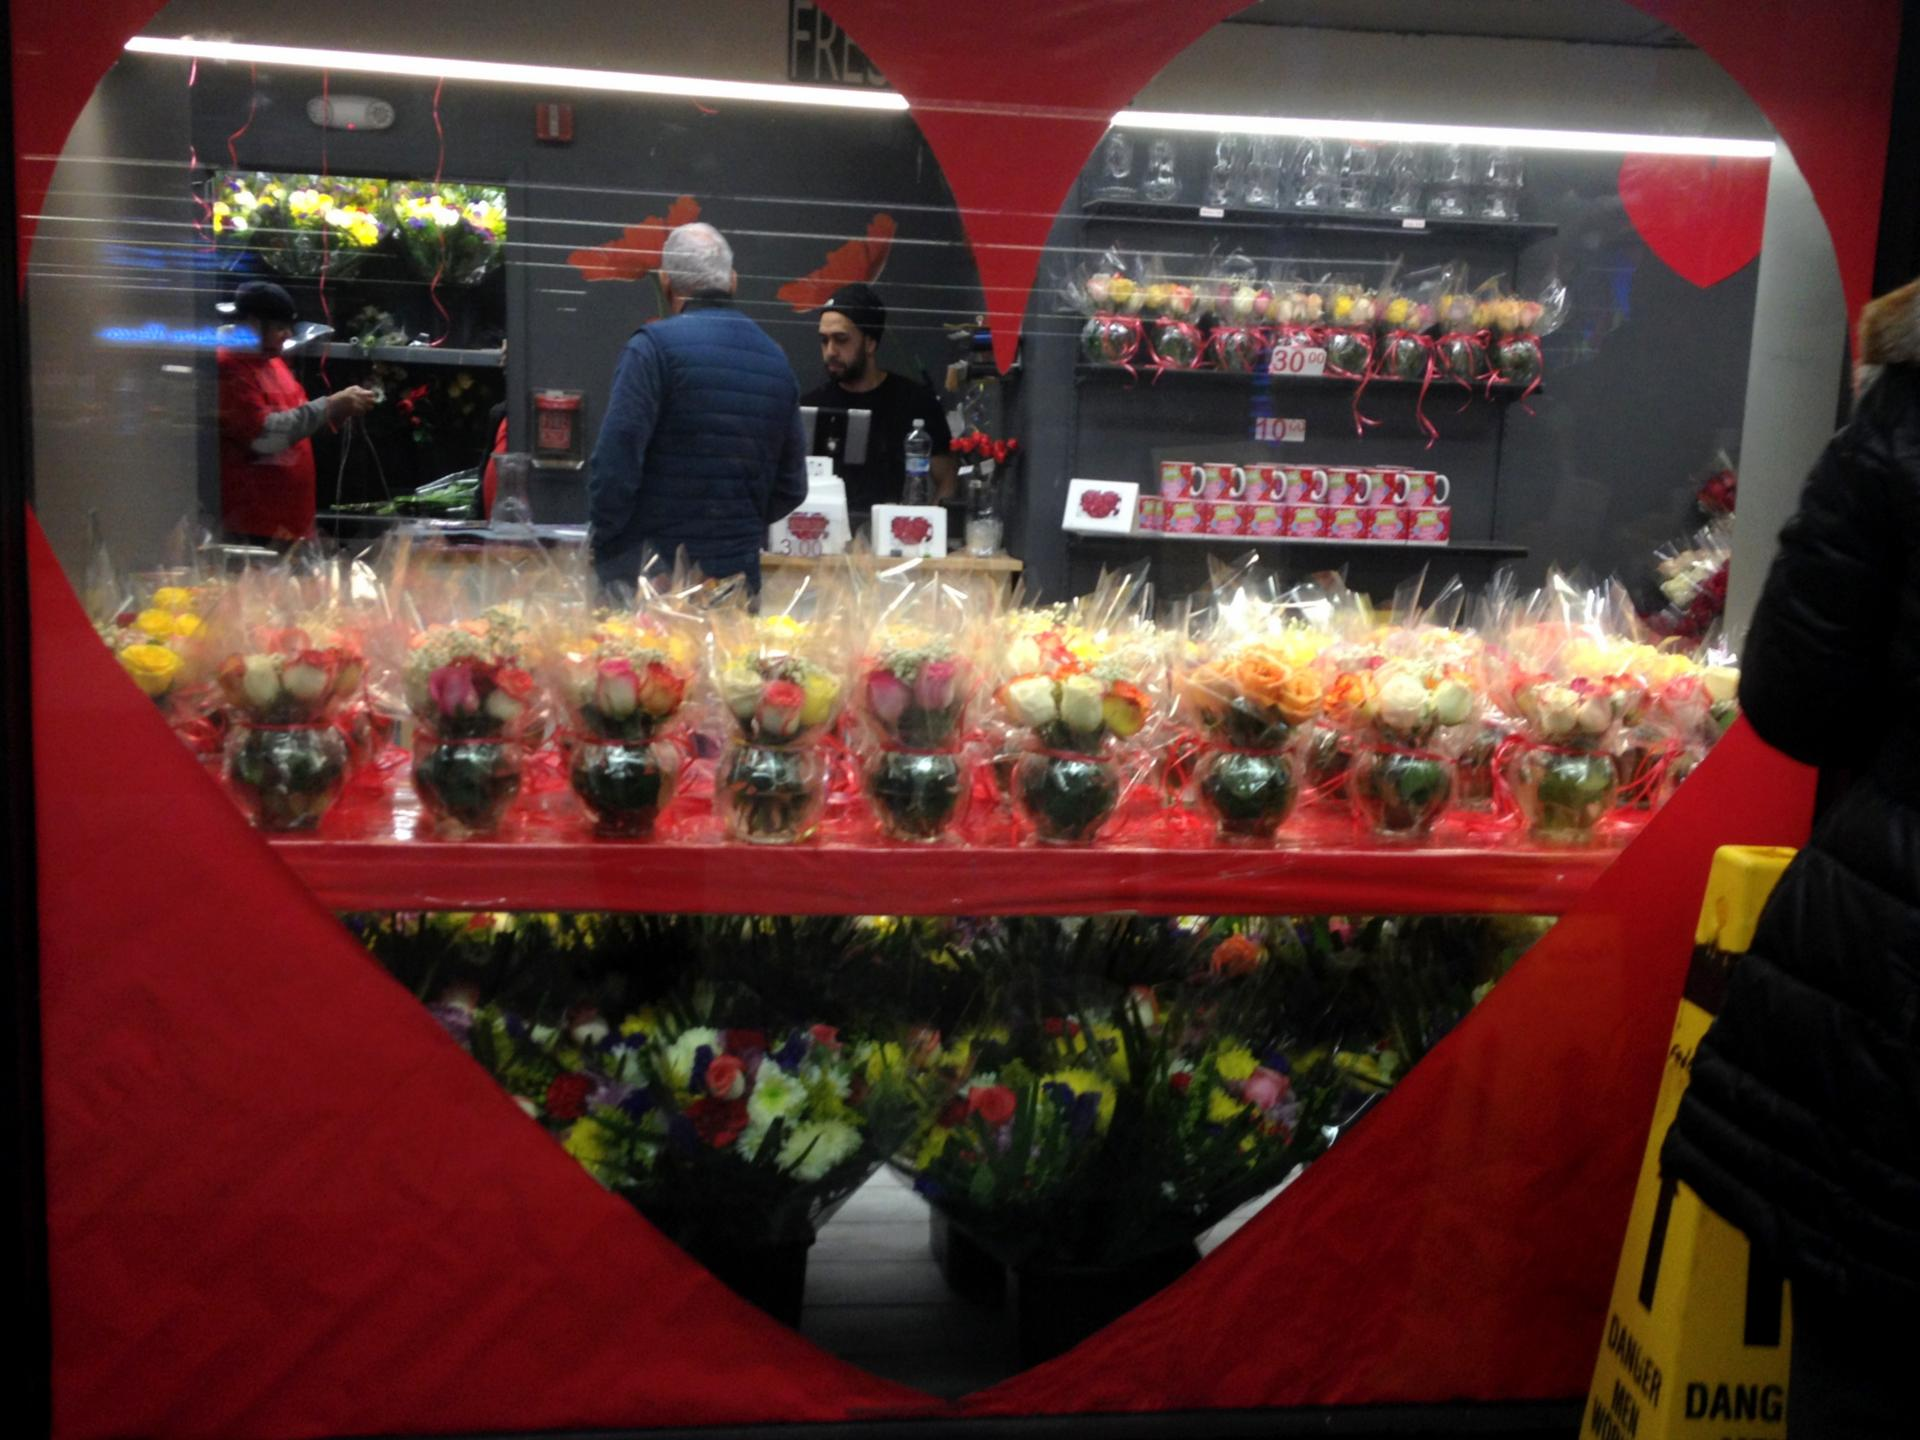 09mothersday - The Abel family's flower shop in Penn Station on Valentine's Day. (David Abel/Globe Staff)